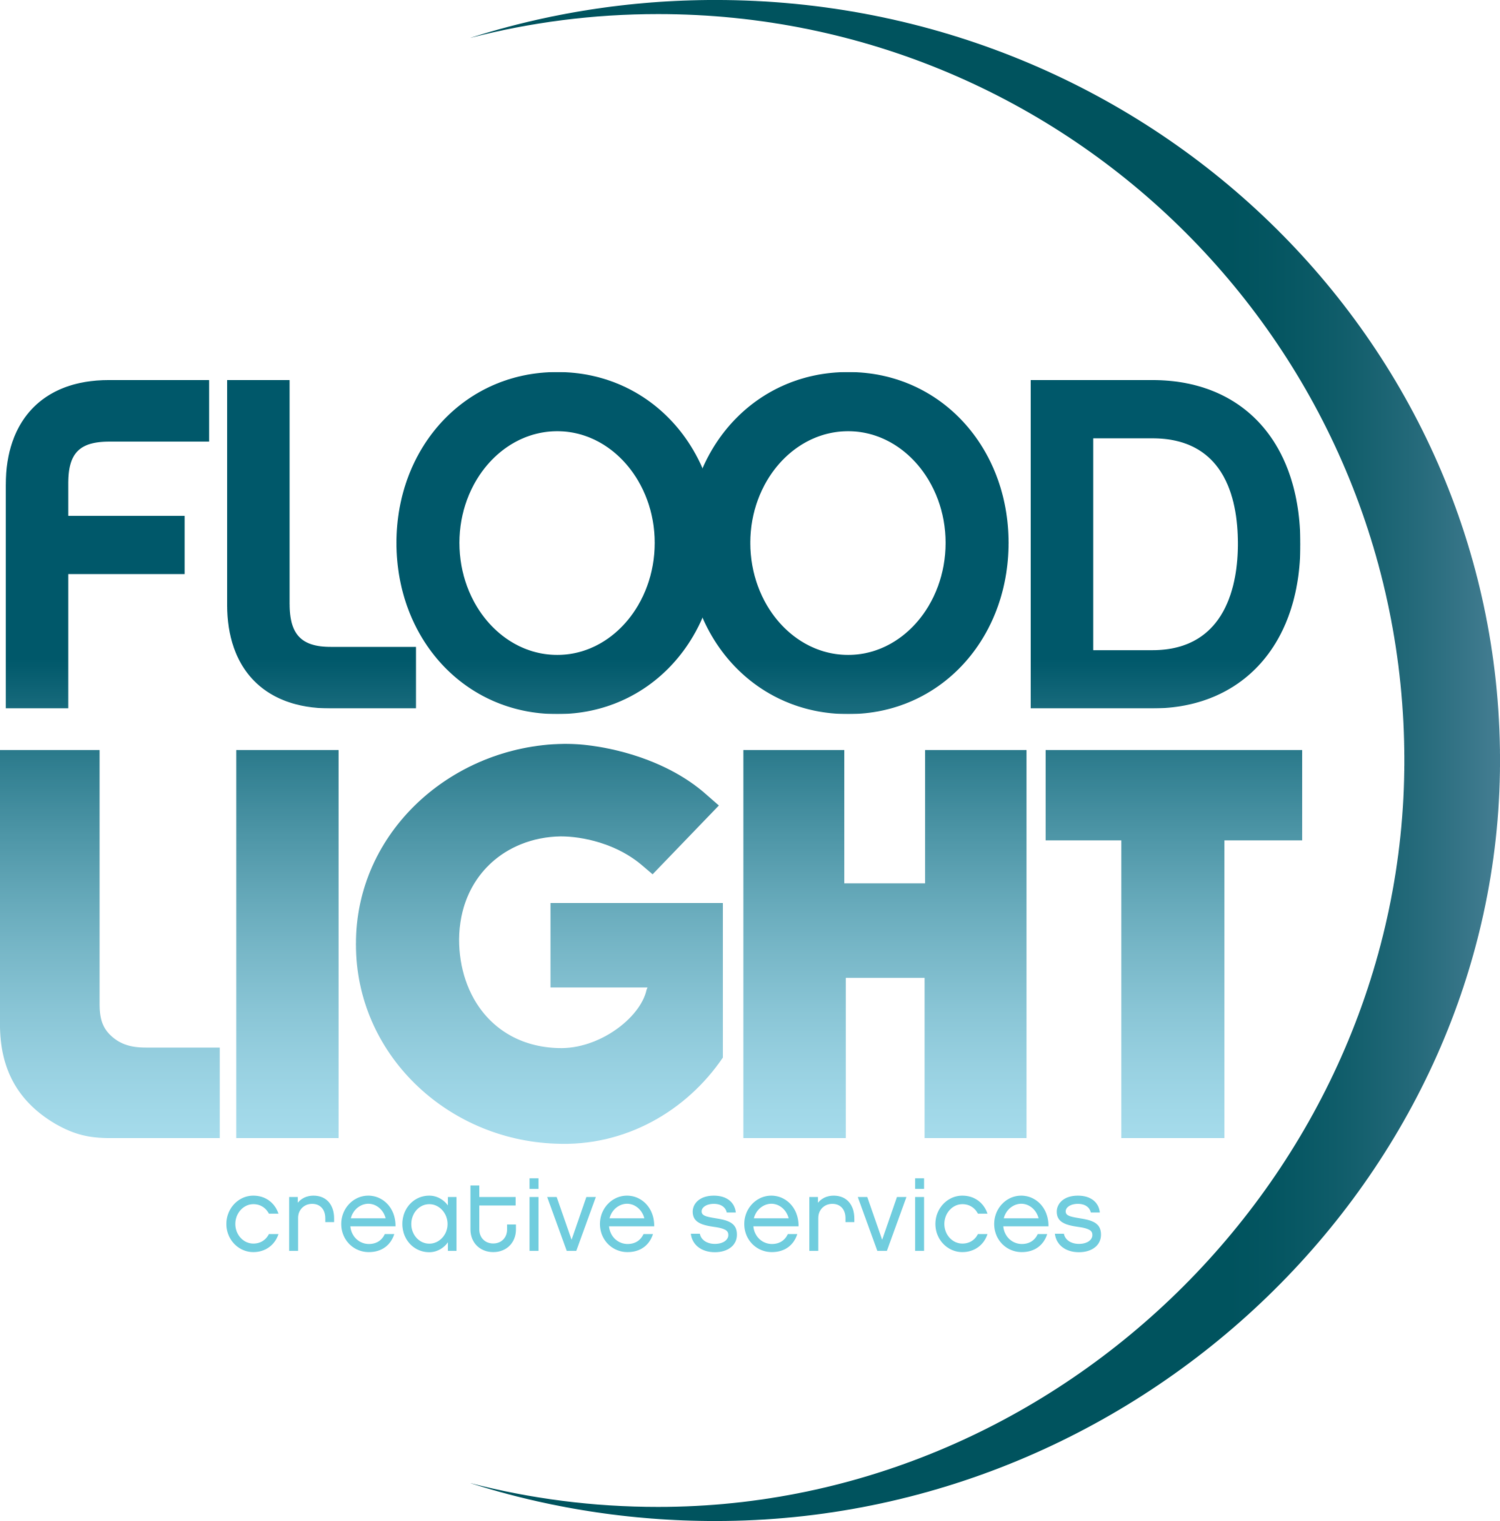 FLOODLIGHT CREATIVE SERVICES